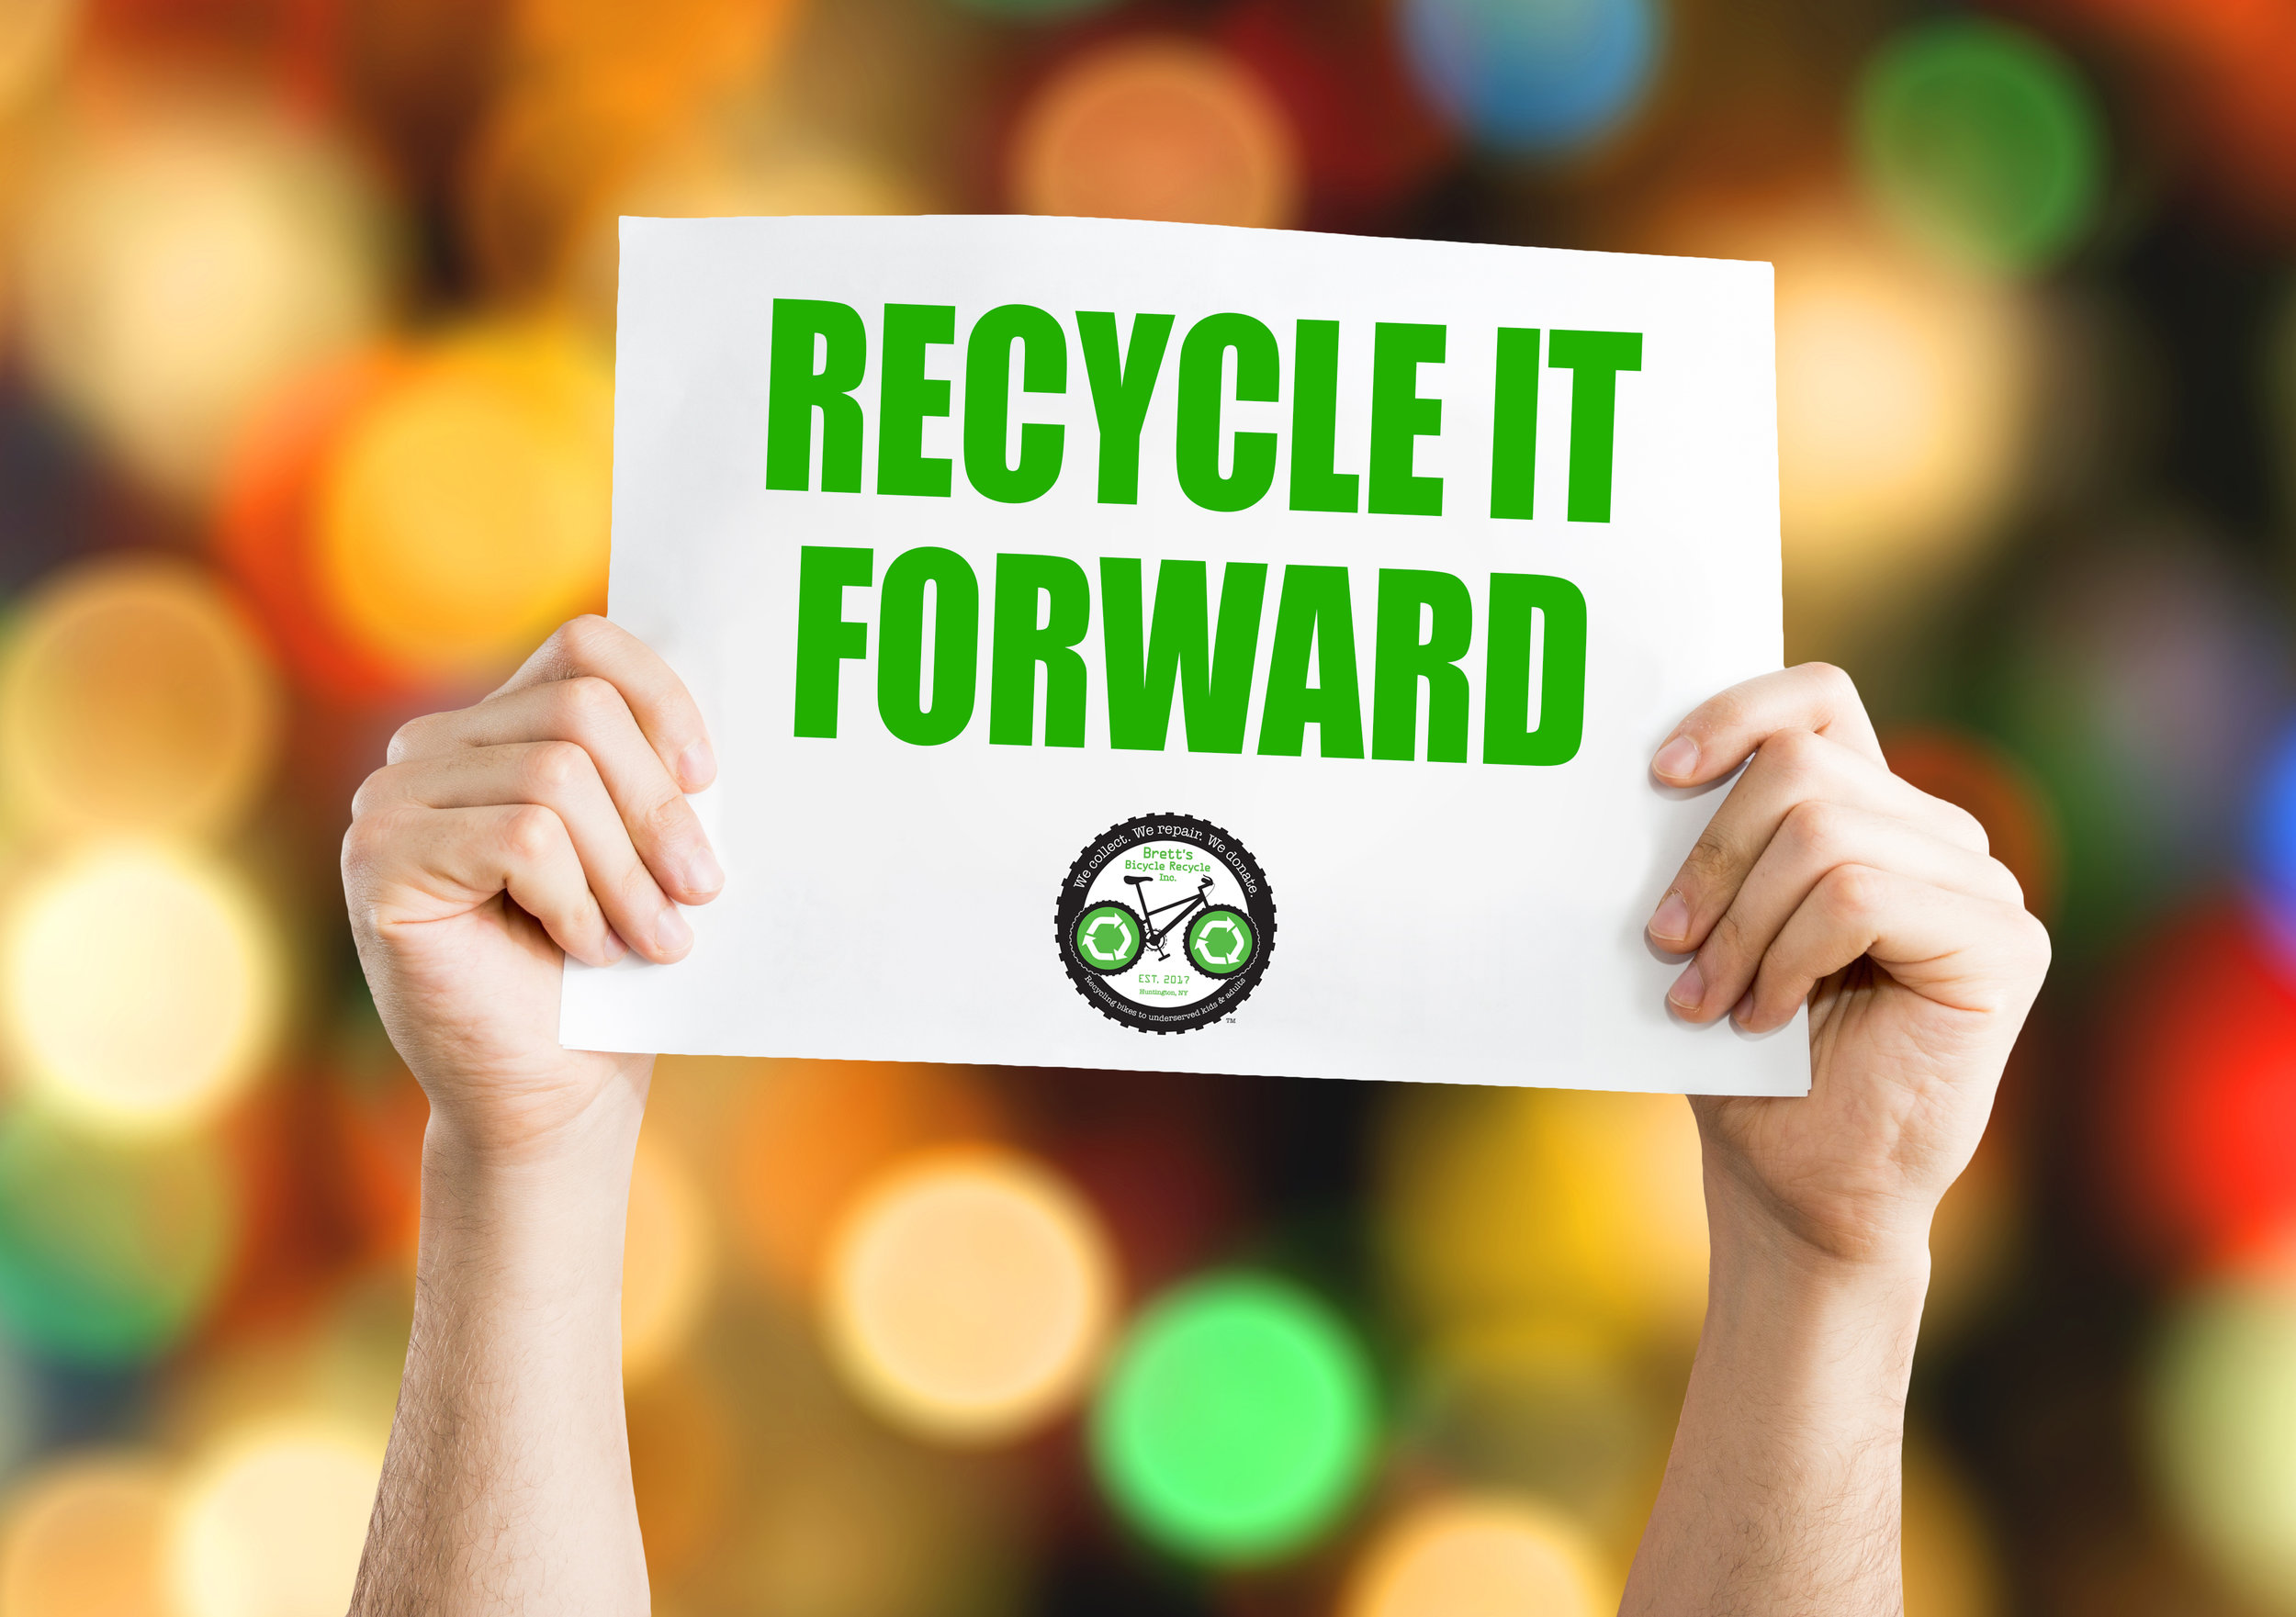 RECYCLE IT FORWARD Sign in Hand.jpg